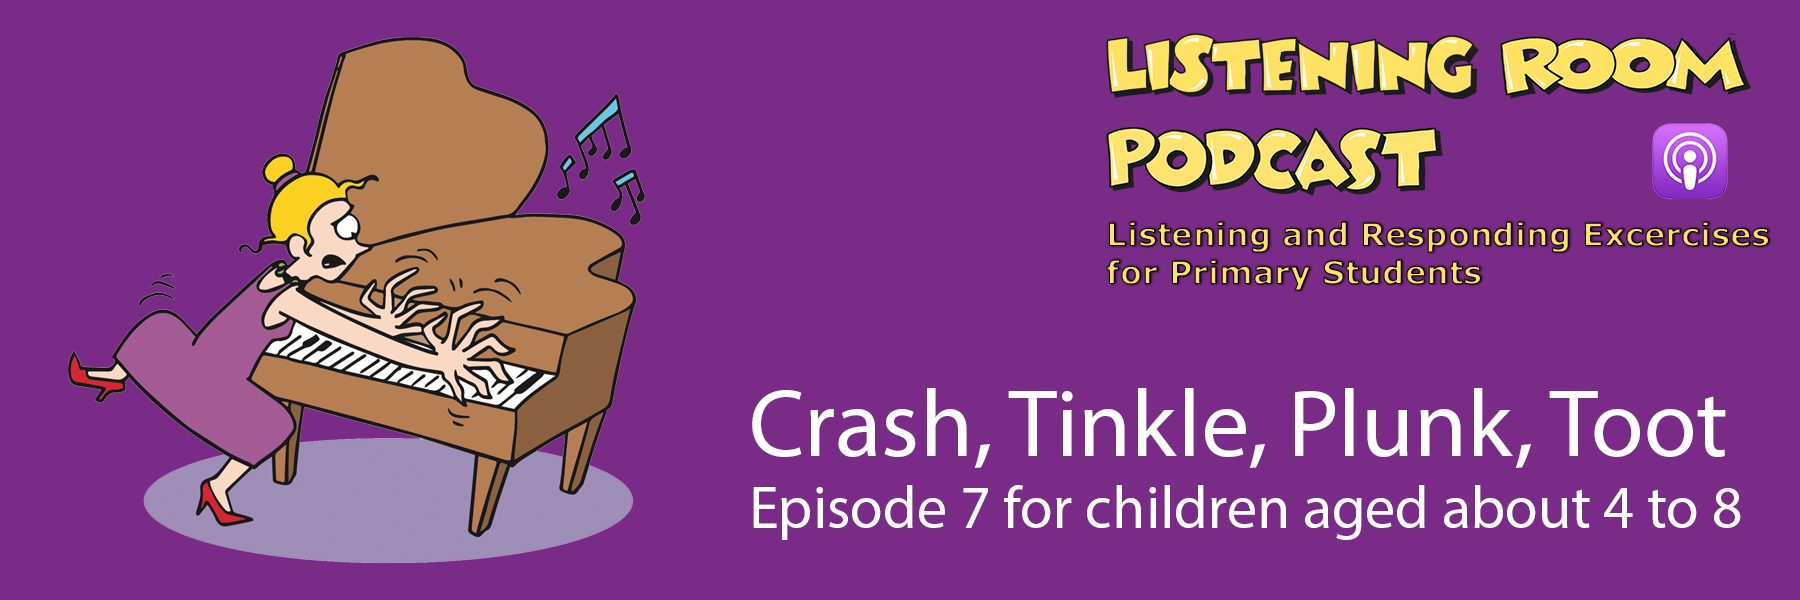 Crash Tinkle Plunk Toot - Listening Room Podcast Series 1 Episode 7